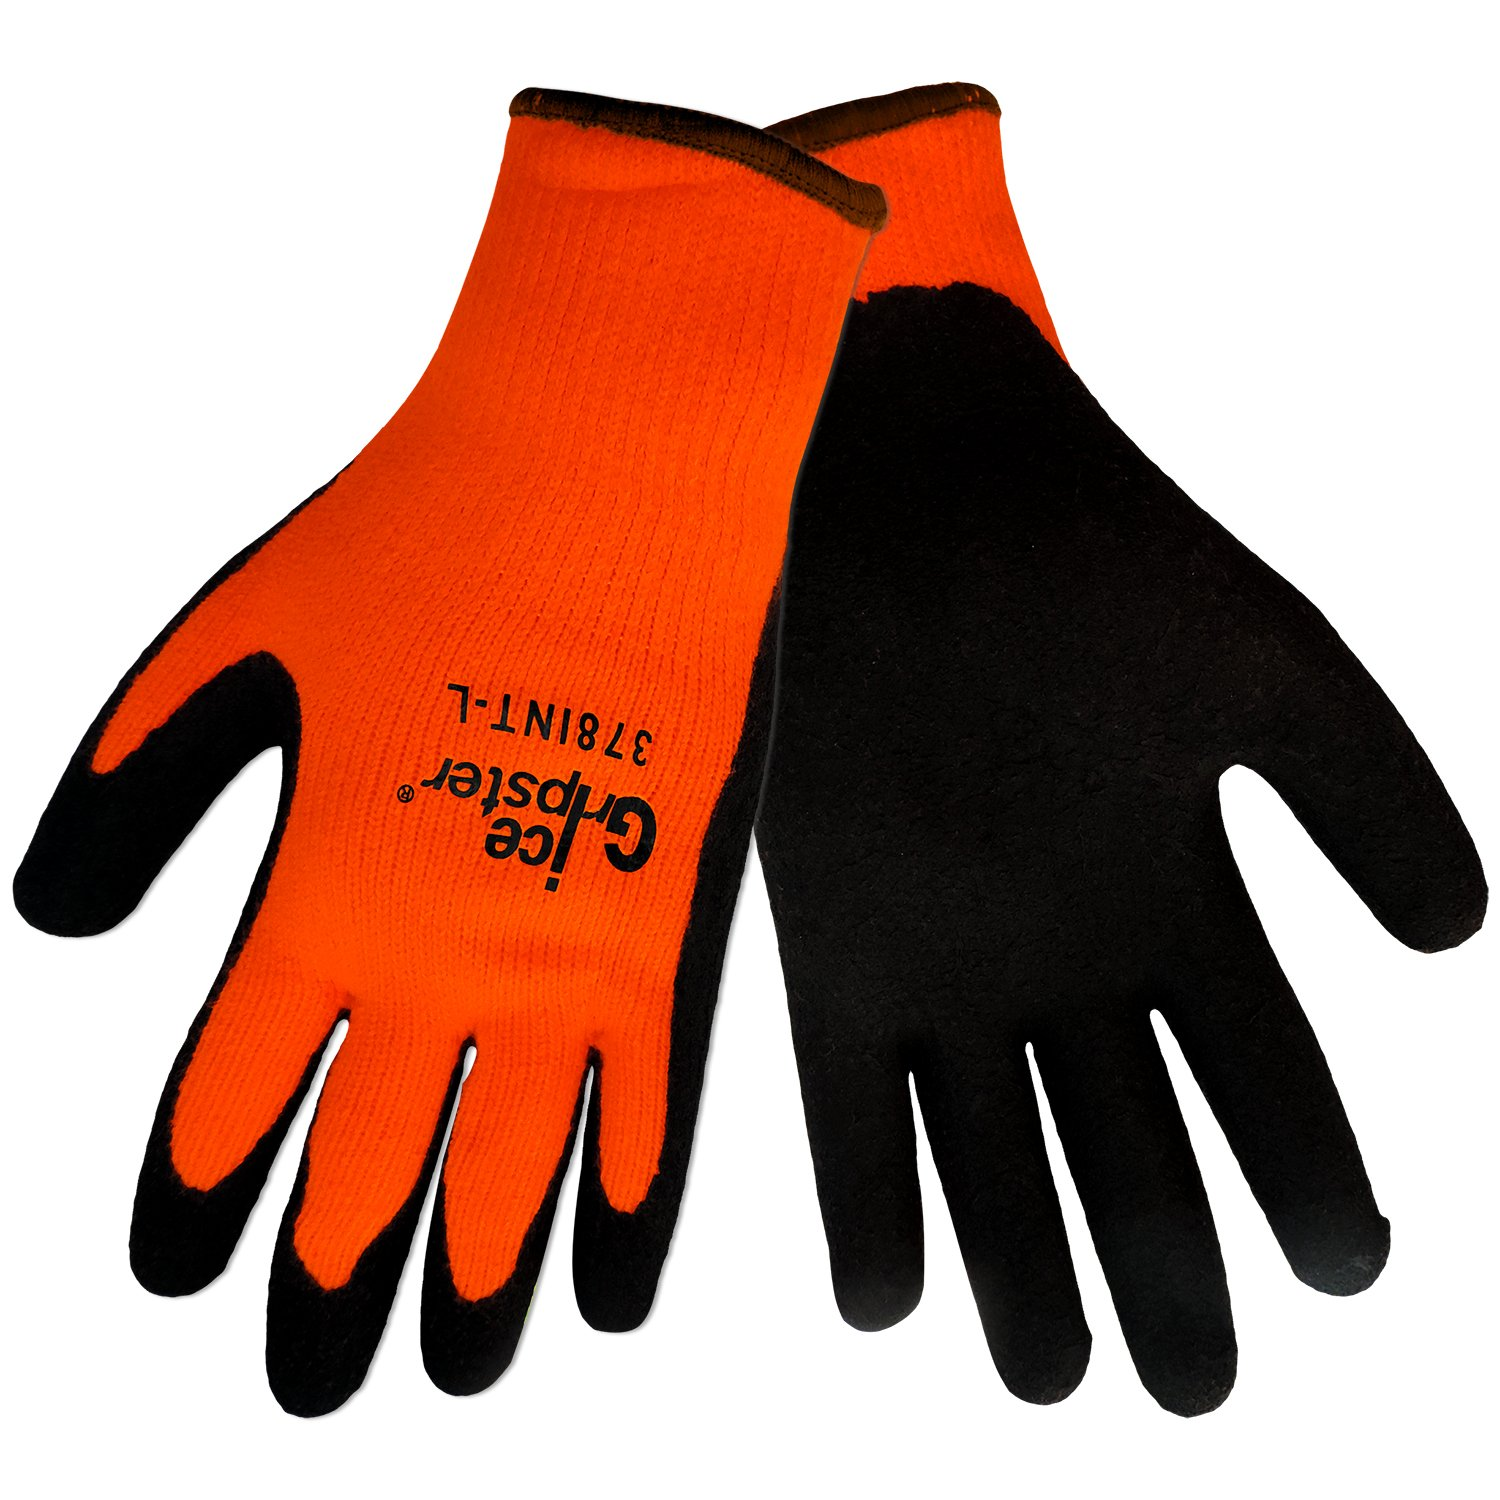 Global Glove 378INT Ice Gripster Foam Rubber Glove, Extra Large, Orange/Black (Case of 72)